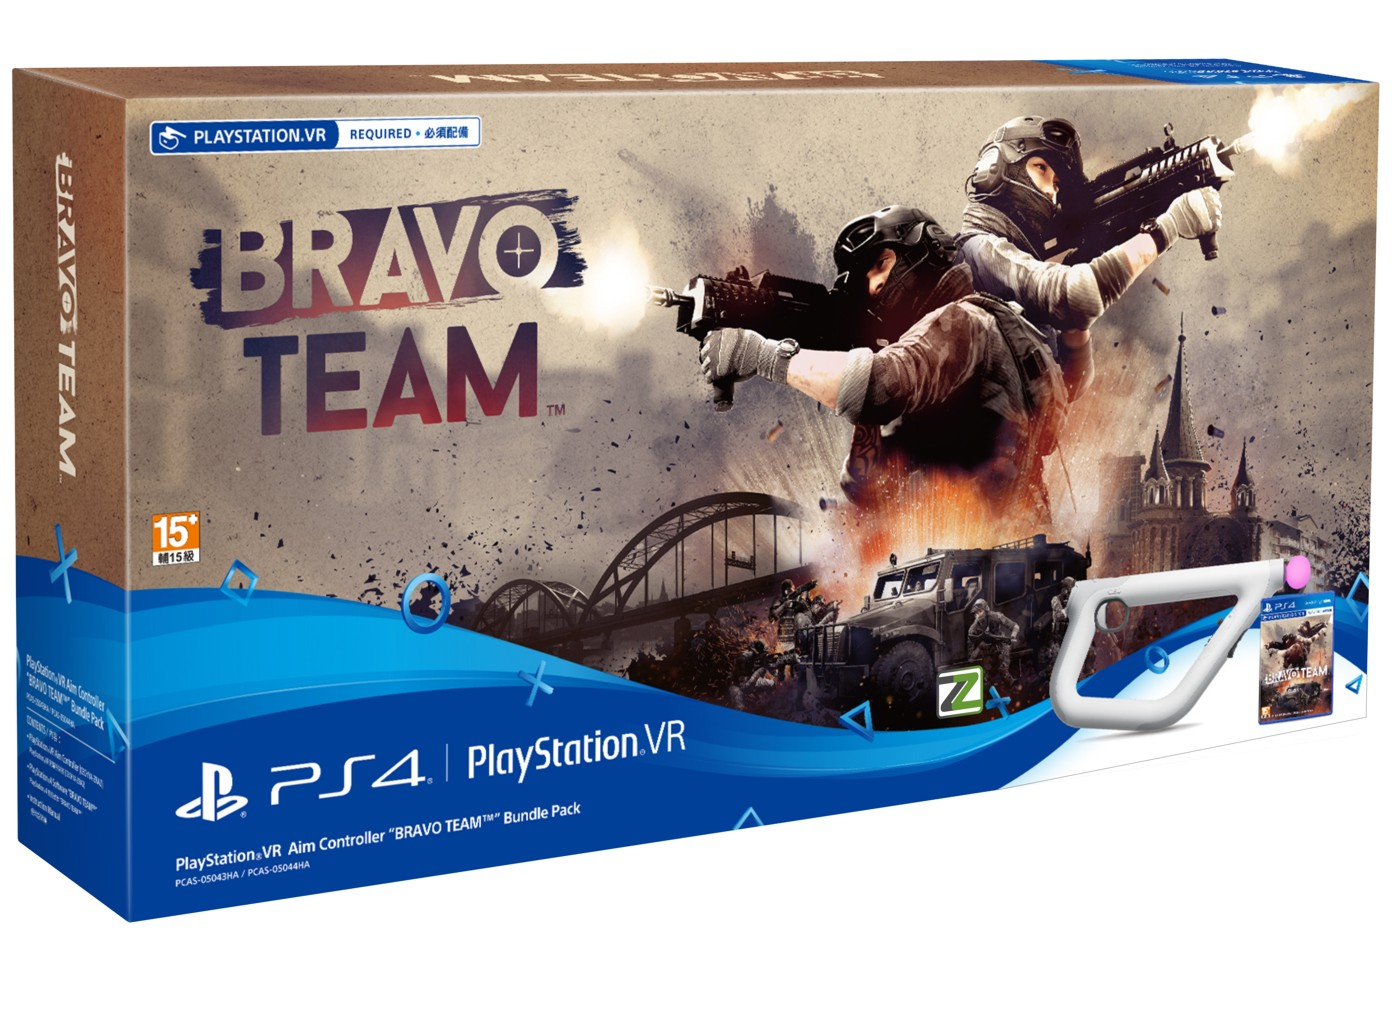 Bravo Team PS4 VR + Sony PlayStation VR Aim Controller